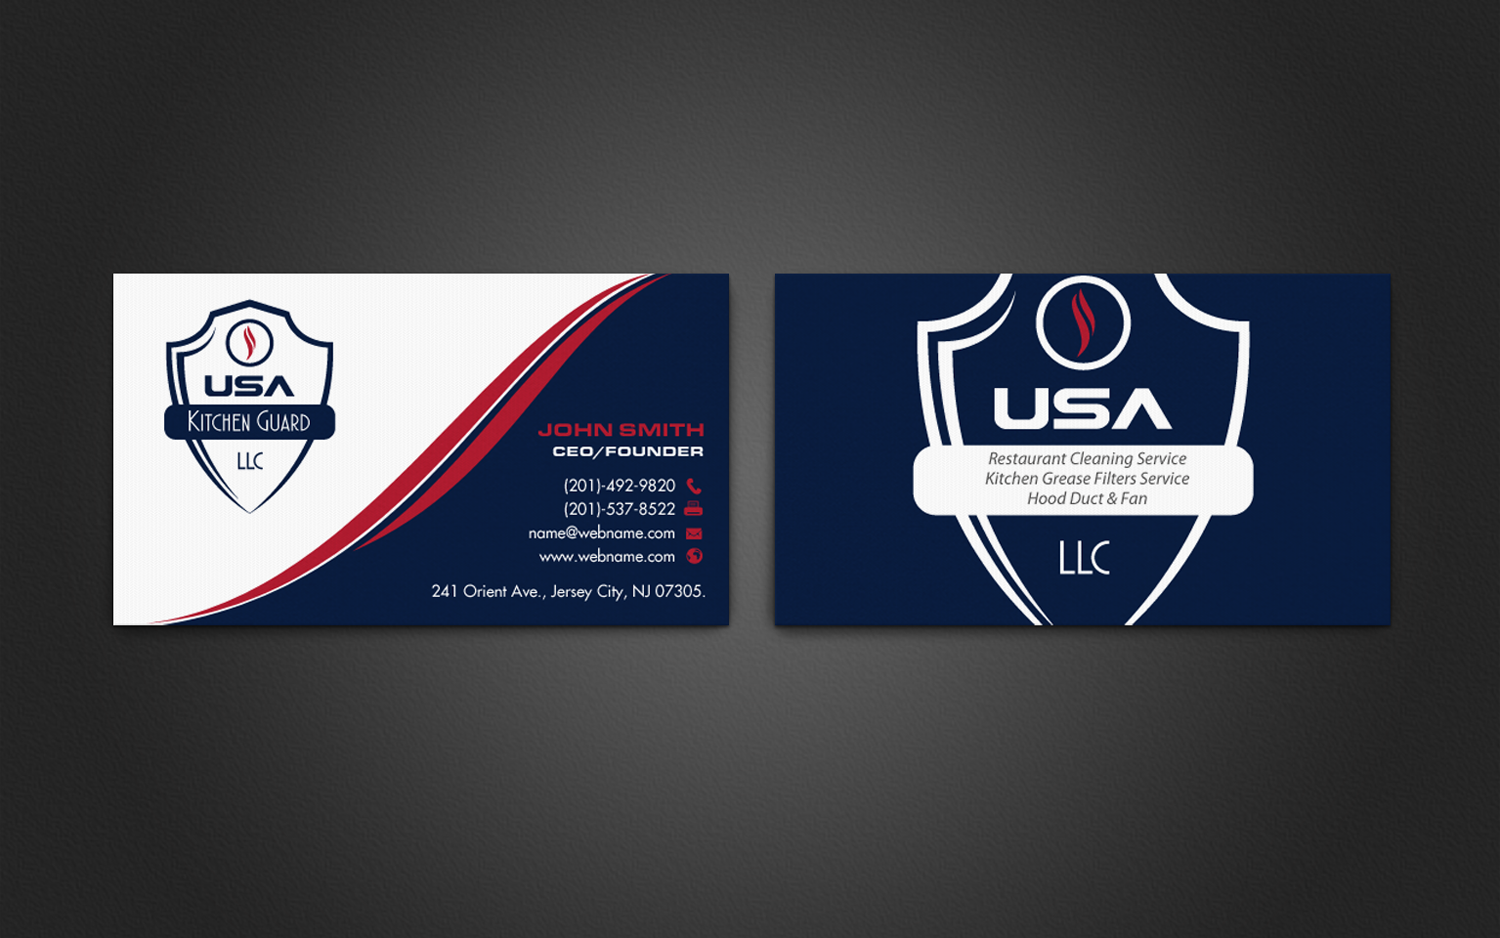 Professional elegant business business card design for usa kitchen business card design by chandrayaaneative for usa kitchen guard llc design 7114758 reheart Images